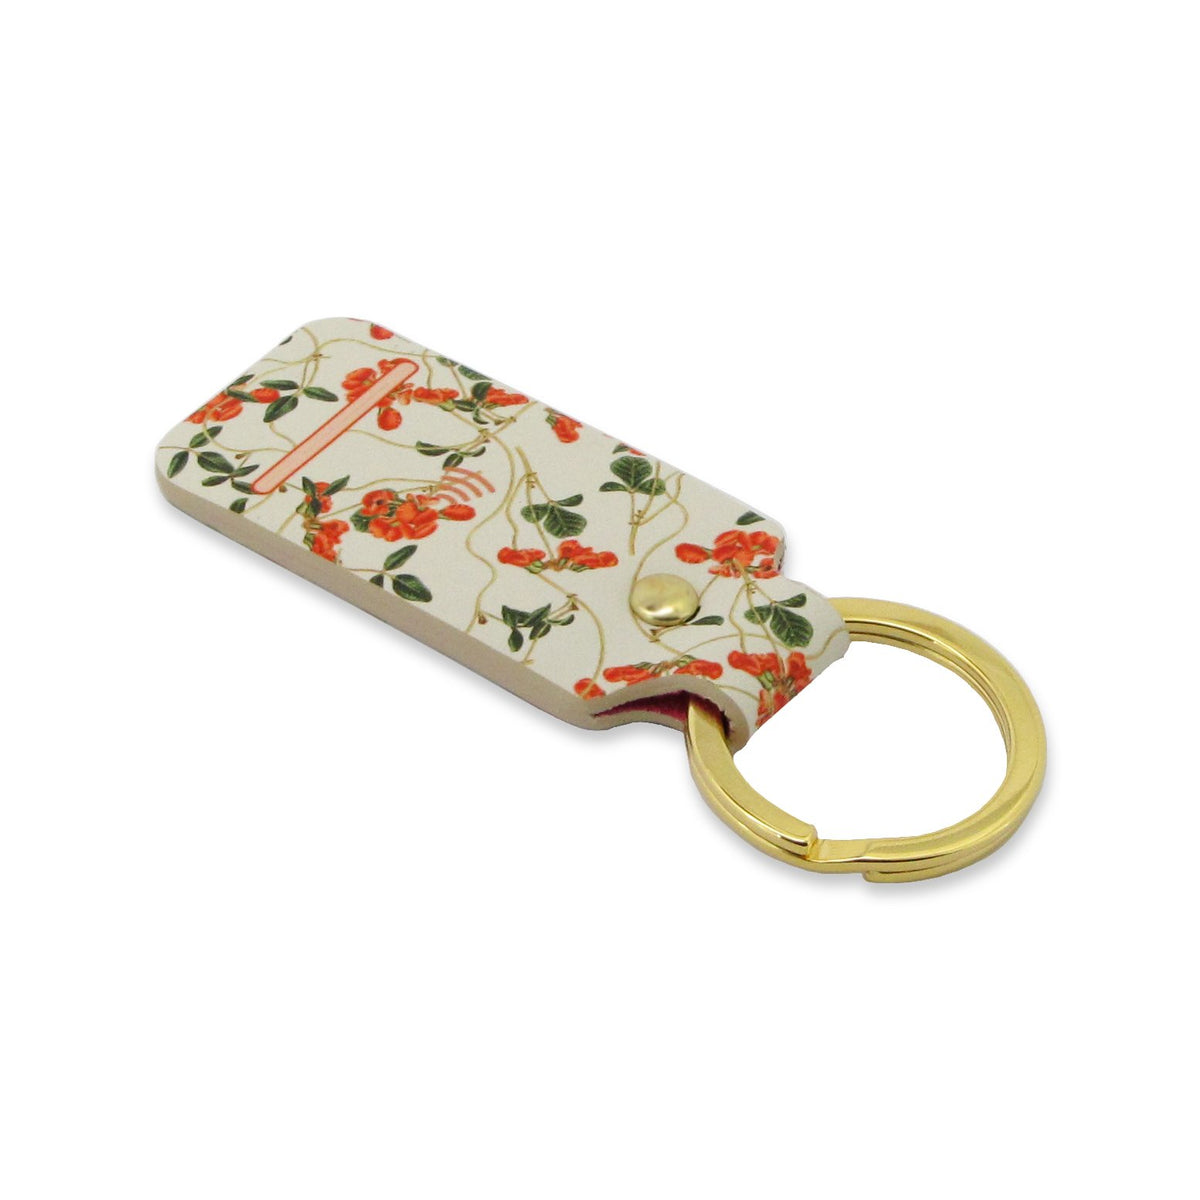 Leather Contactless Payment Key Fob - Sweet Pea Tovi Sorga